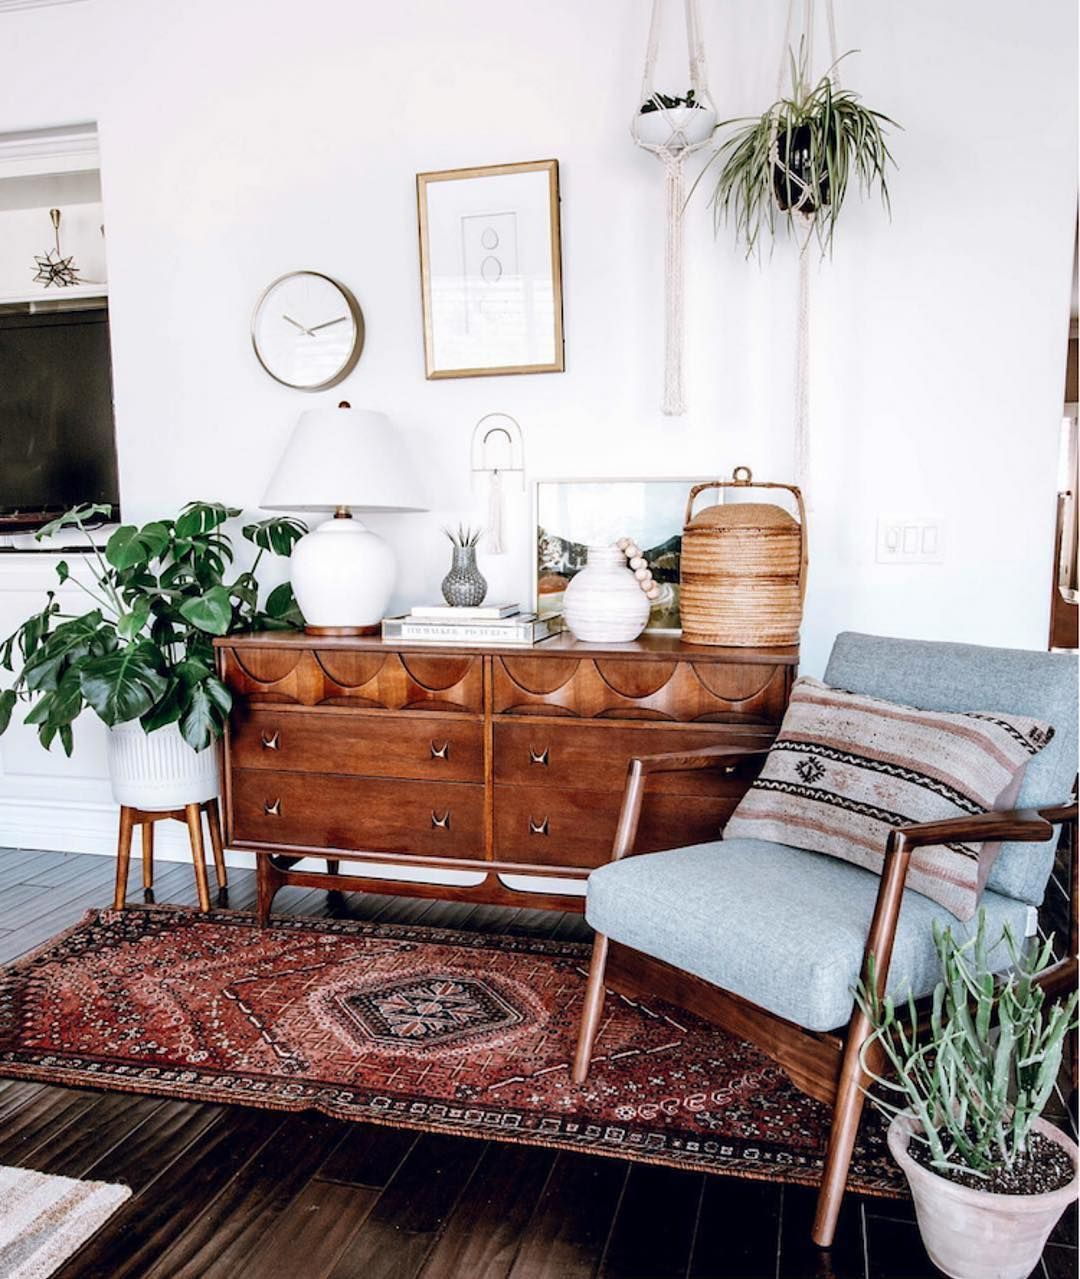 Warm and inviting home furniture ideas in pinterest home